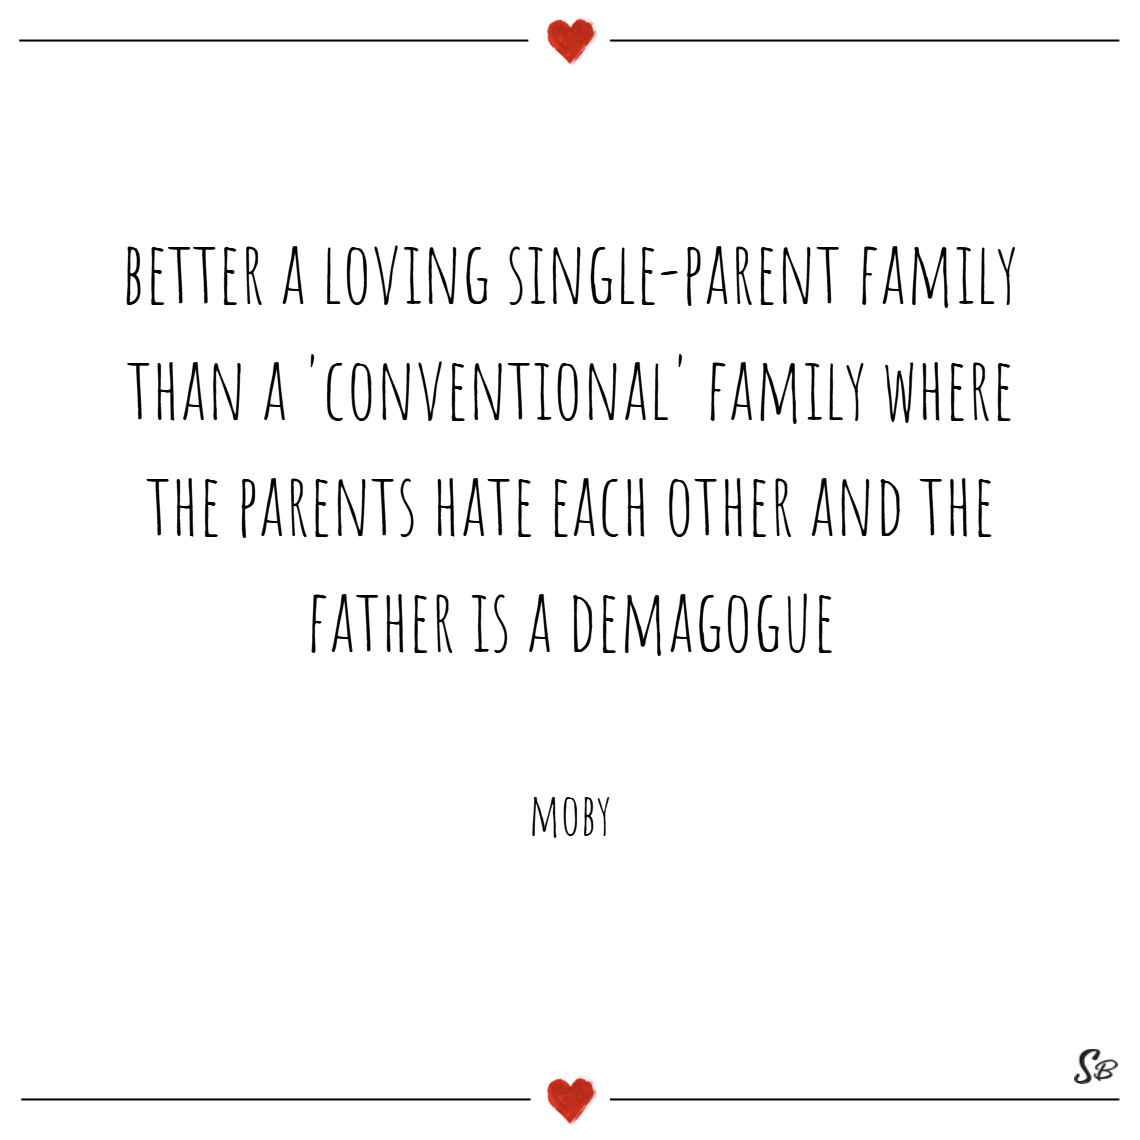 Better a loving single parent family than a 'conventional' family where the parents hate each other and the father is a demagogue. – moby